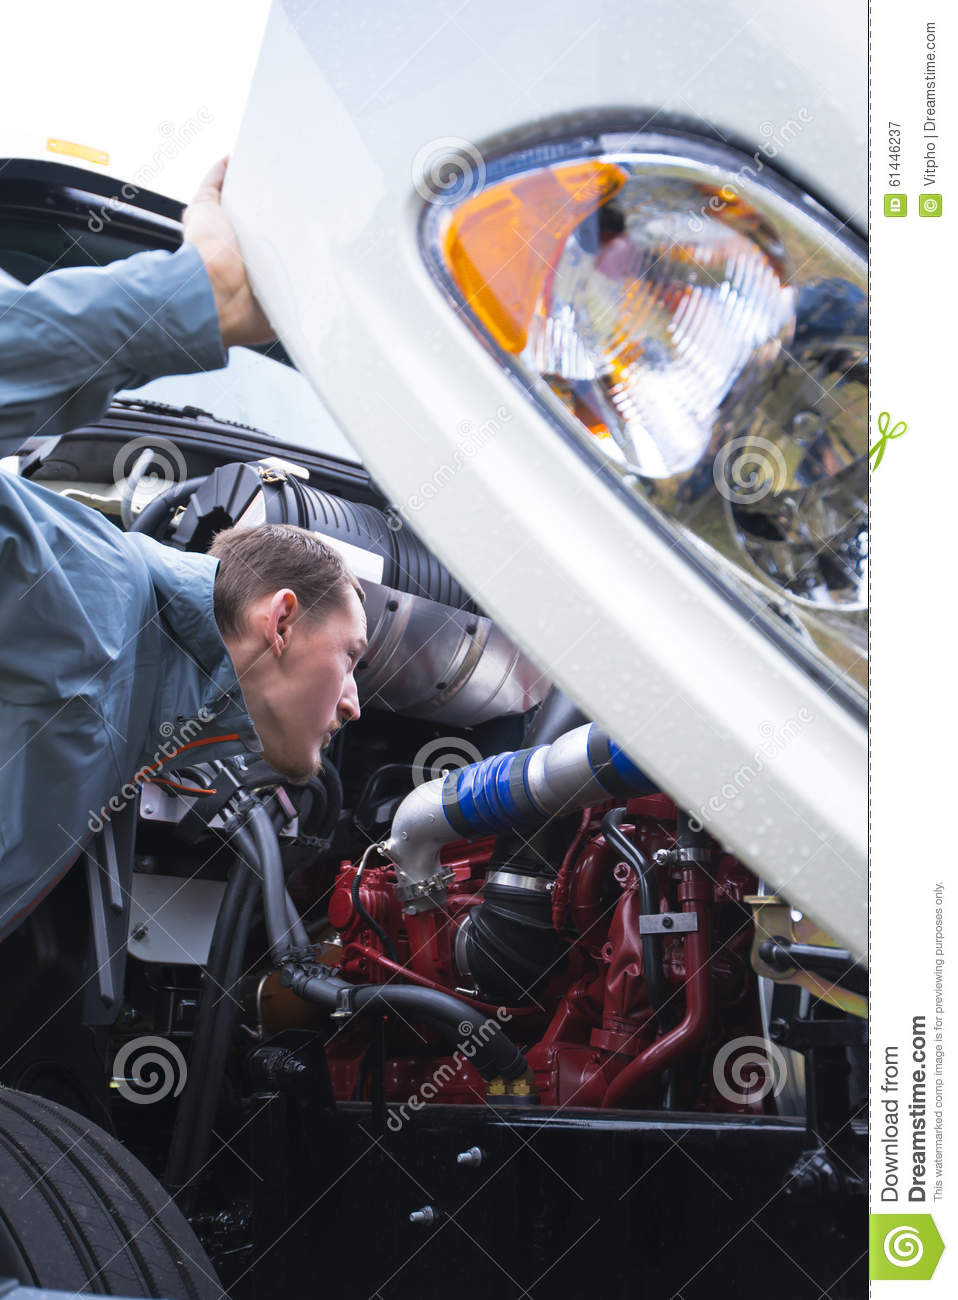 Semi Truck Driver Inspect Working Engine Of White Big Rig